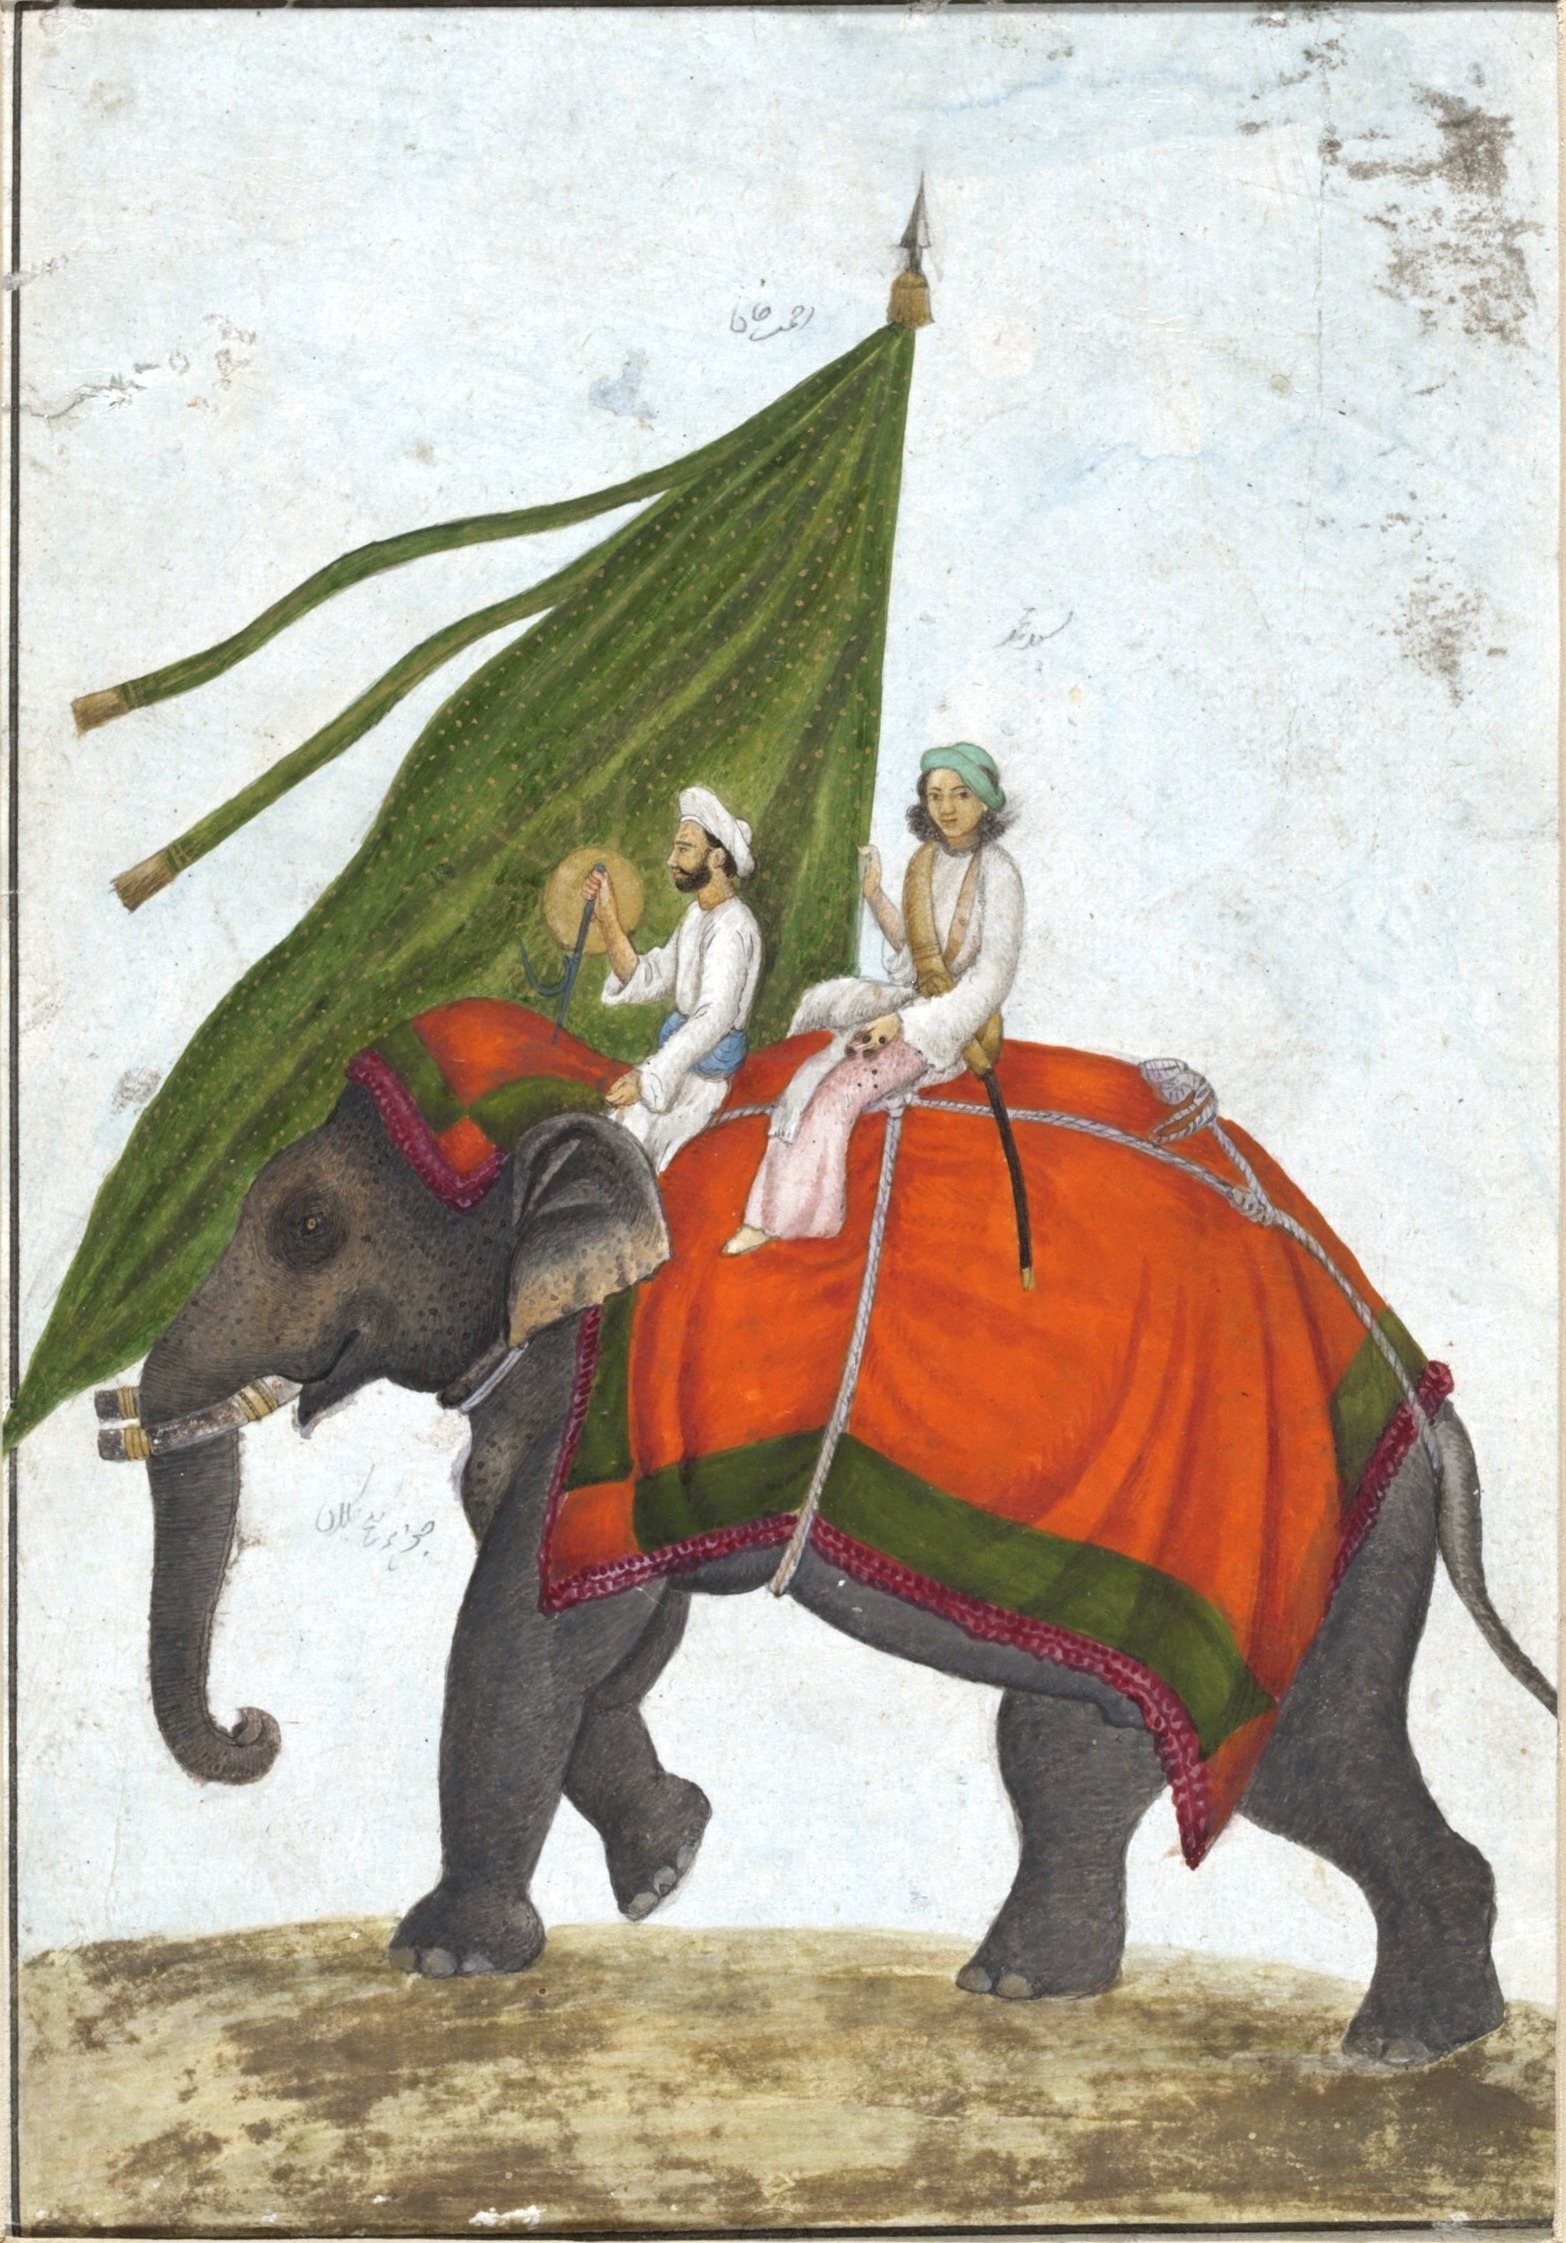 the history and description of the mughal empire Mughal dynasty, mughal also spelled mogul, arabic mongol, muslim dynasty of  turkic-mongol origin that ruled most of northern india from the early 16th to the.